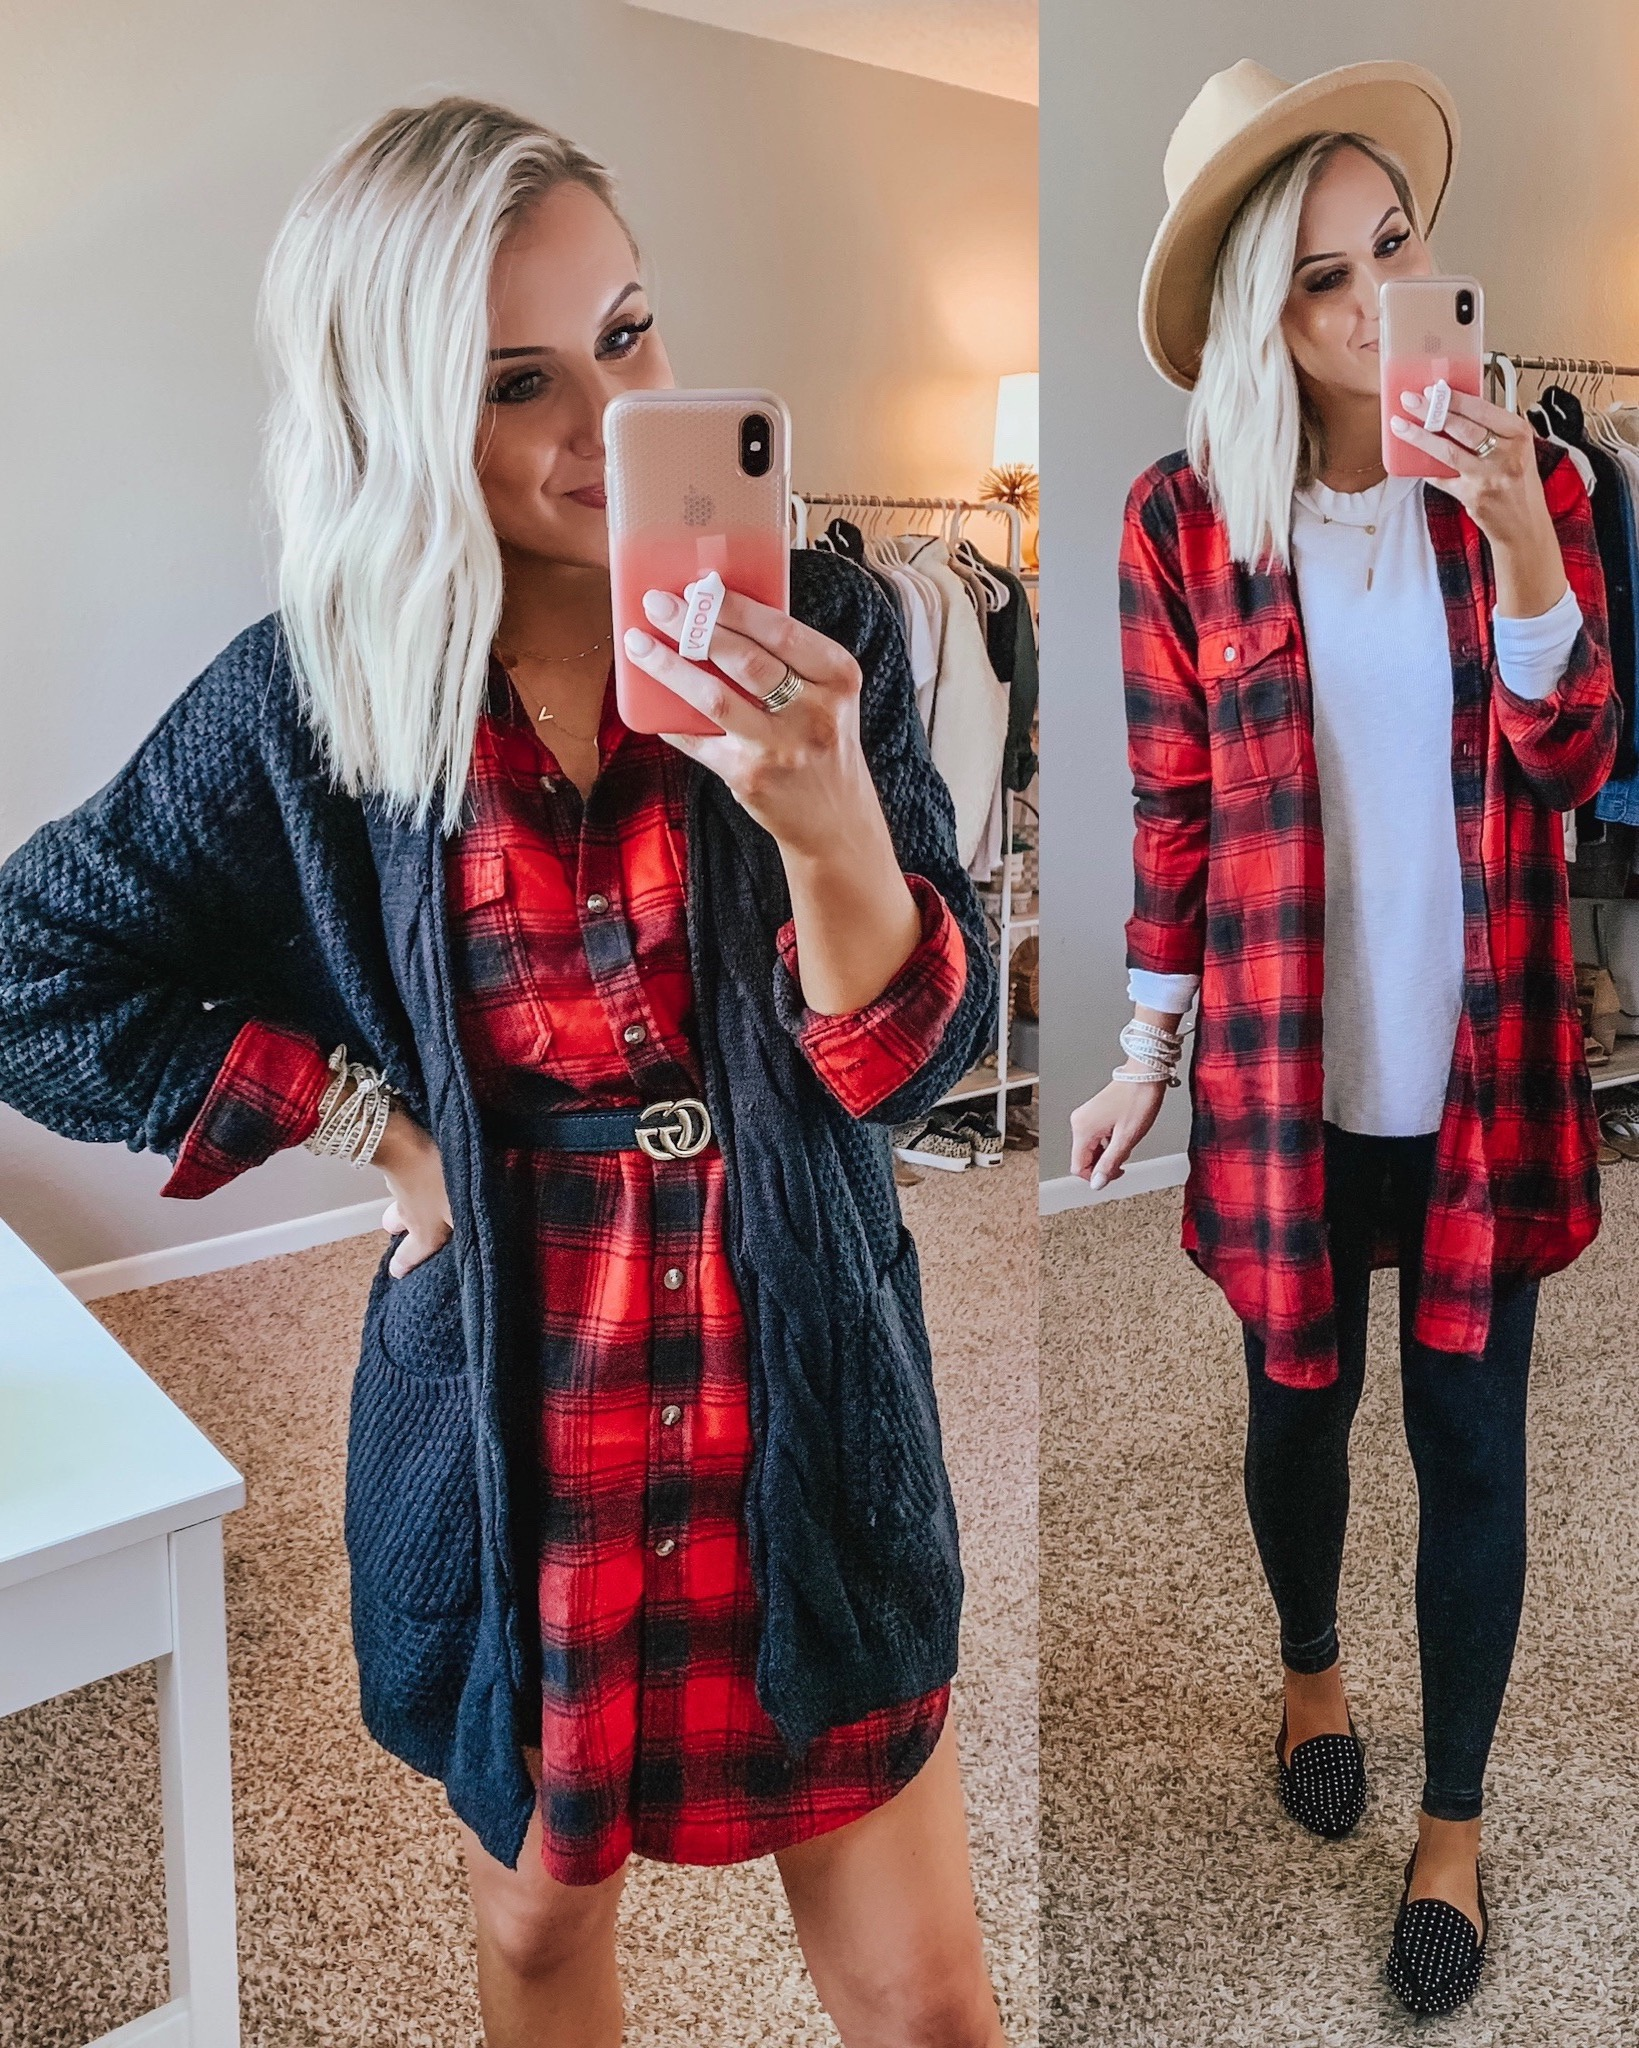 Affordable Fall Transition Outfits   Style Blogger Lauren Meyer shares Affordable Fall Transition Casual Outfits